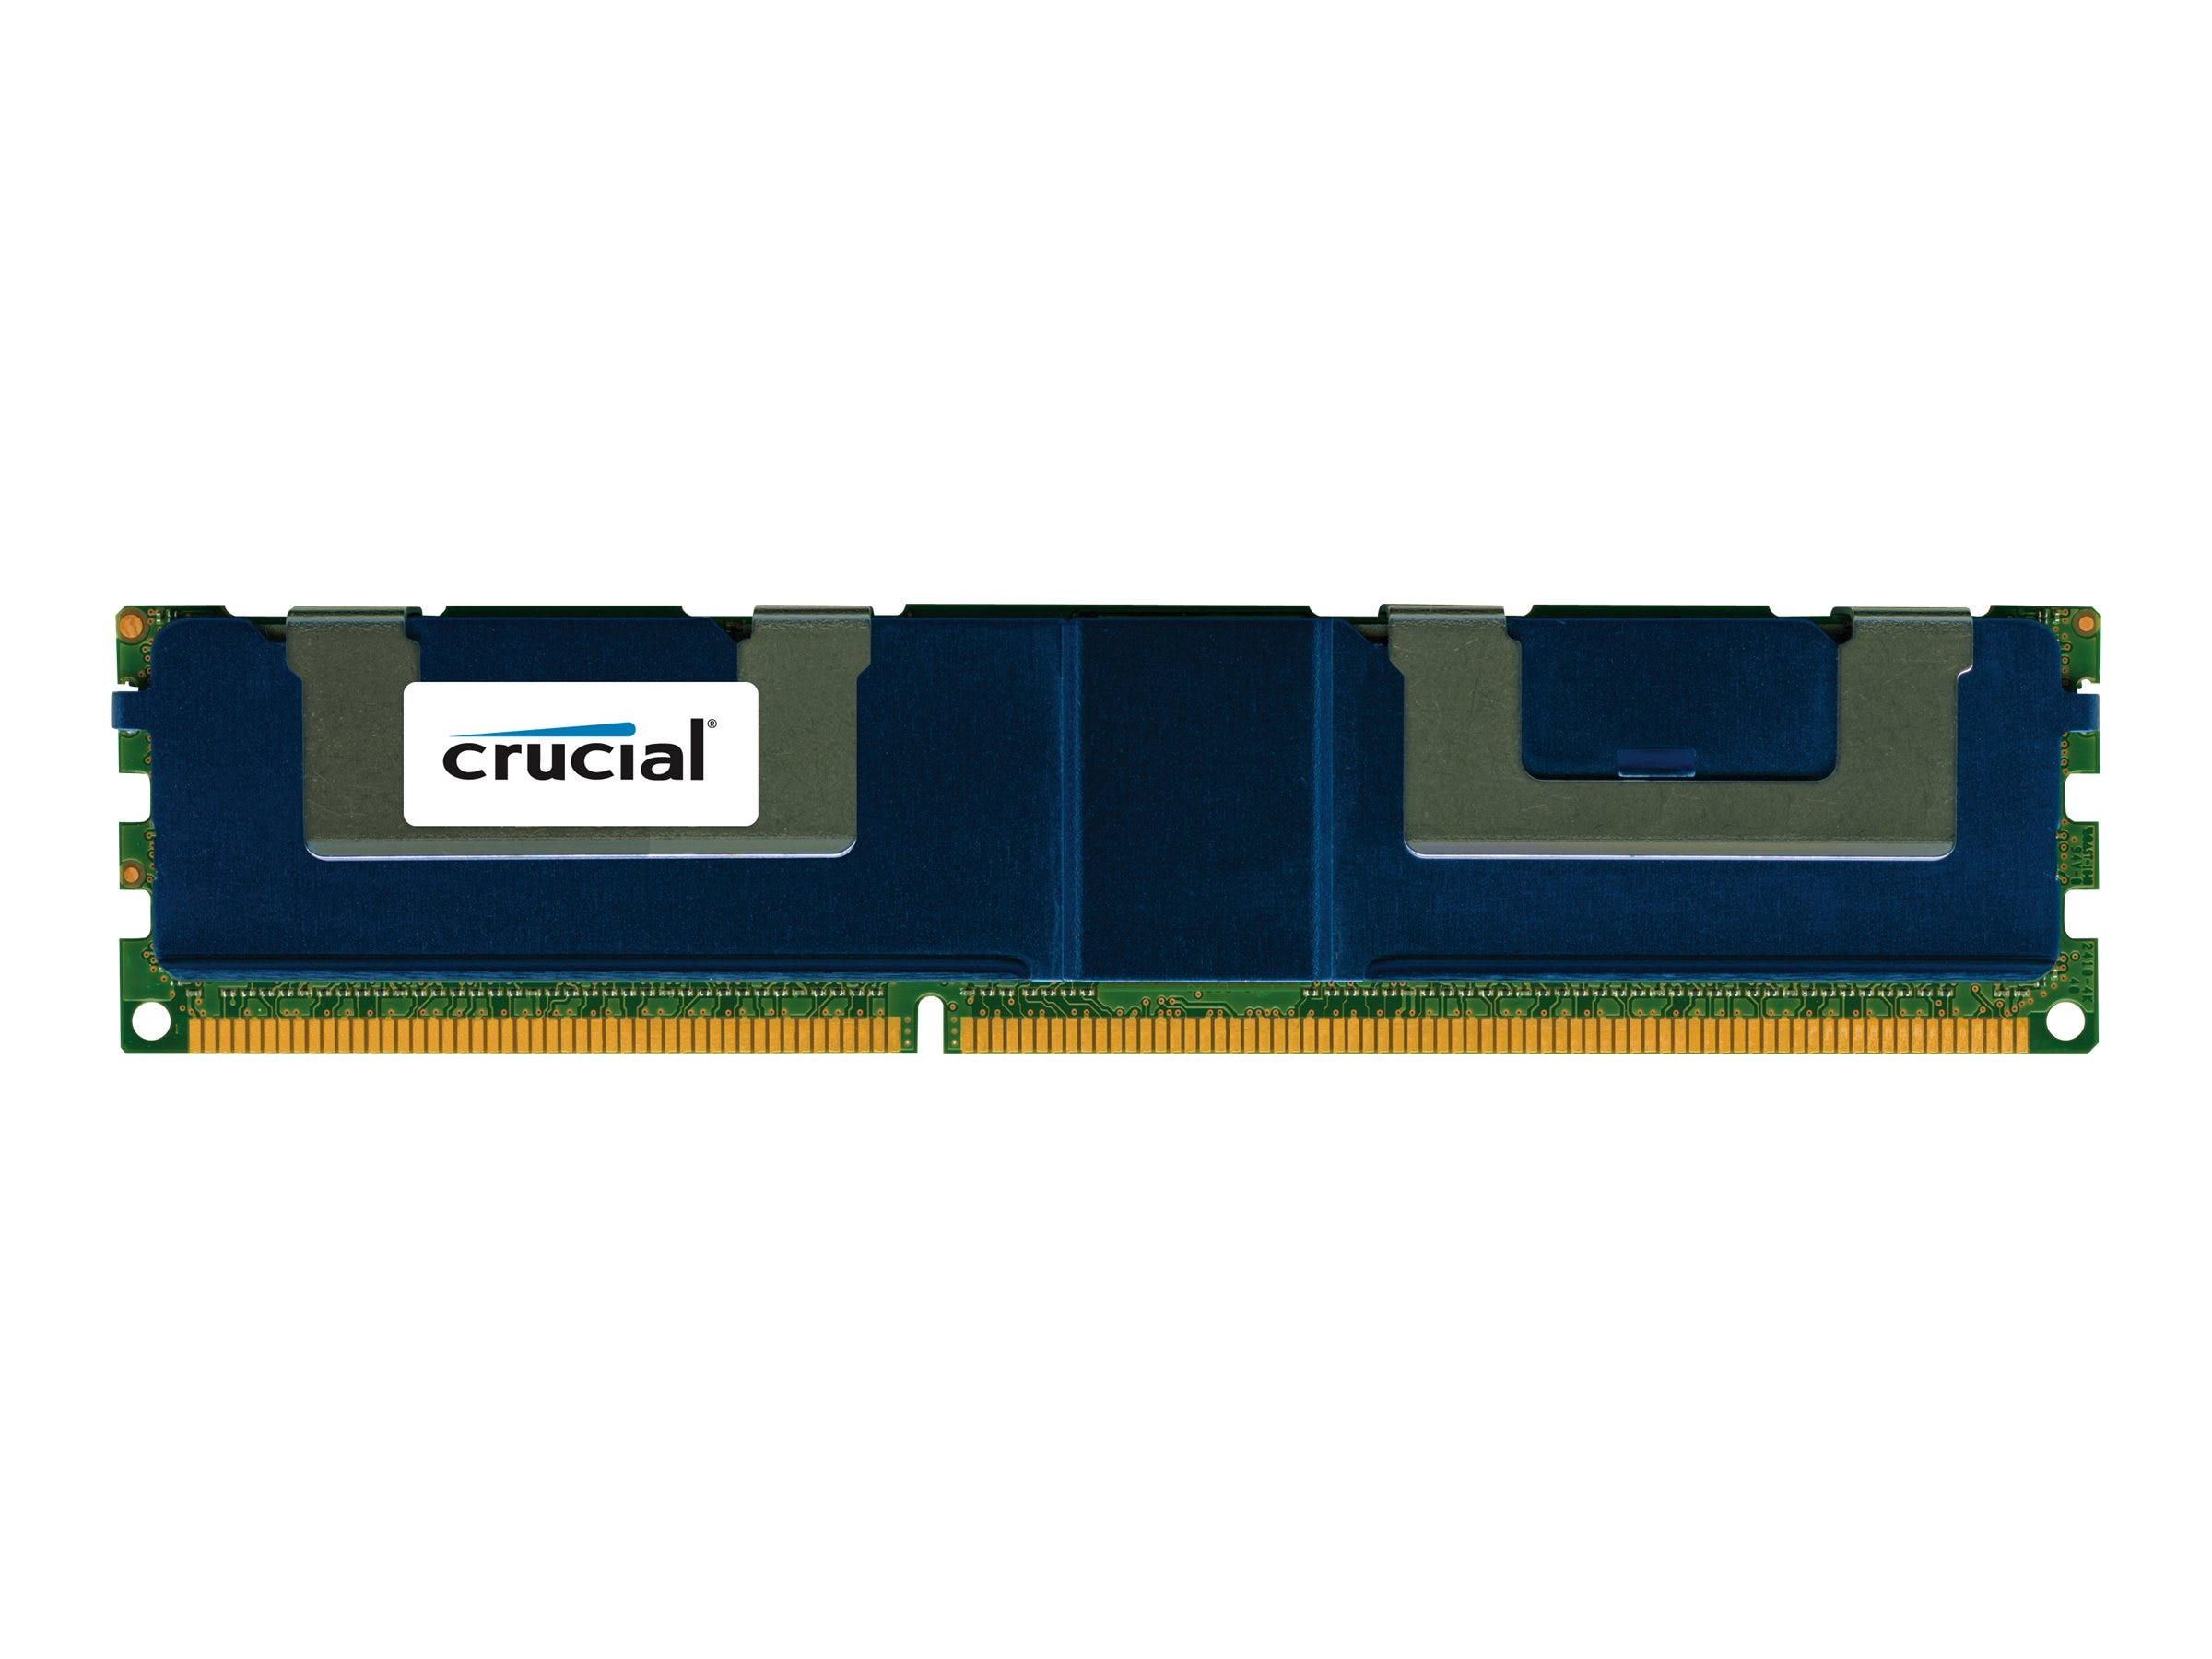 Crucial 32GB PC3-12800 240-pin DDR3 SDRAM DIMM